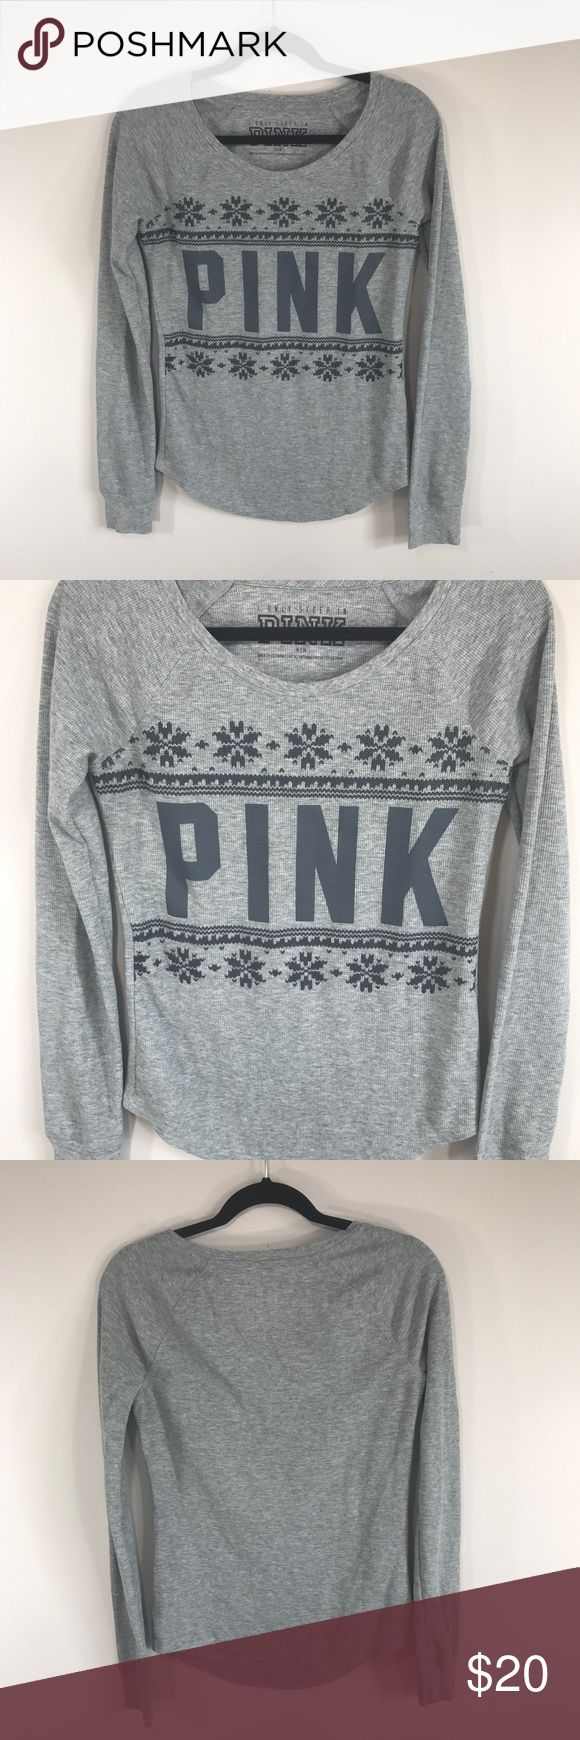 """Victoria's Secret PINK Spell Out Thermal Sleep Top In excellent used condition. Size M, true to size. Please refer to measurements to ensure a proper fit! Pit to pit: 17"""" Length: 24"""" Sleeve: 29"""" PINK Victoria's Secret Tops Tees - Long Sleeve"""